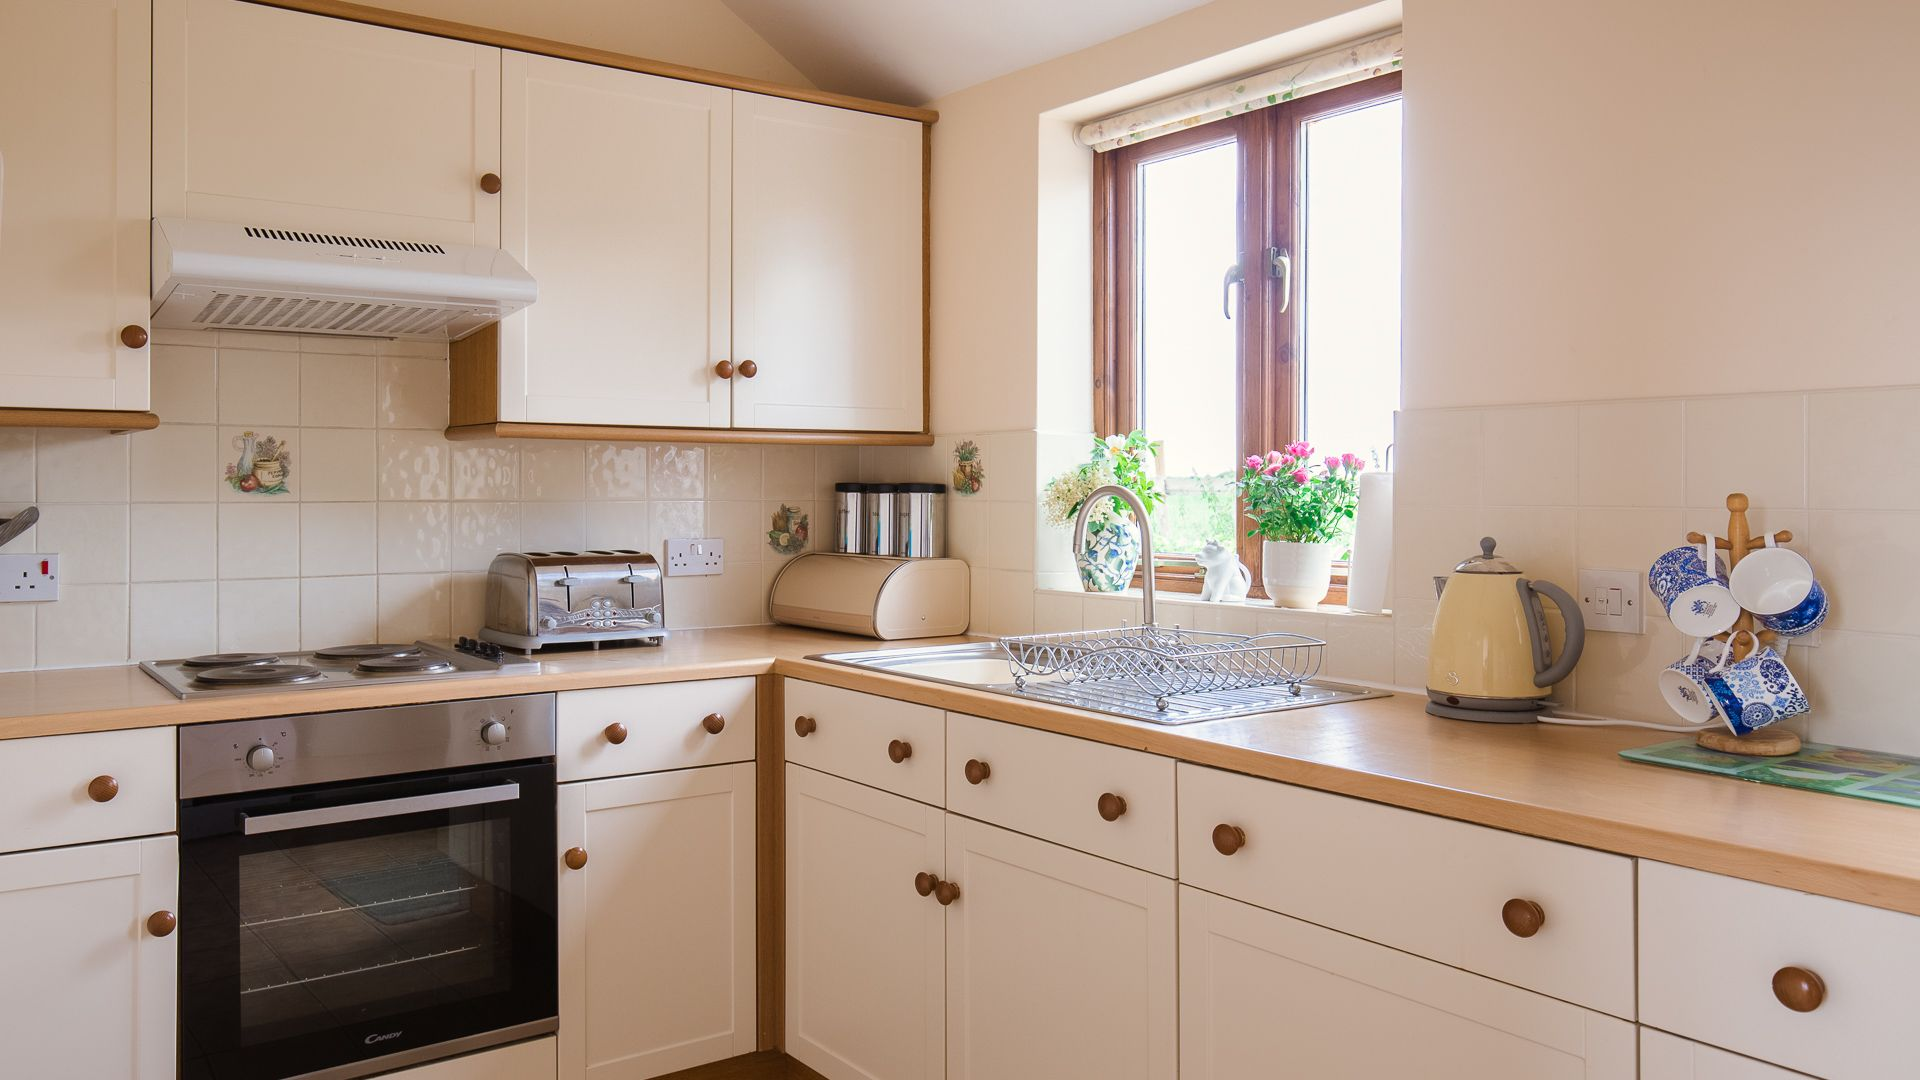 Kitchen, The Gallery, Bolthole Retreats